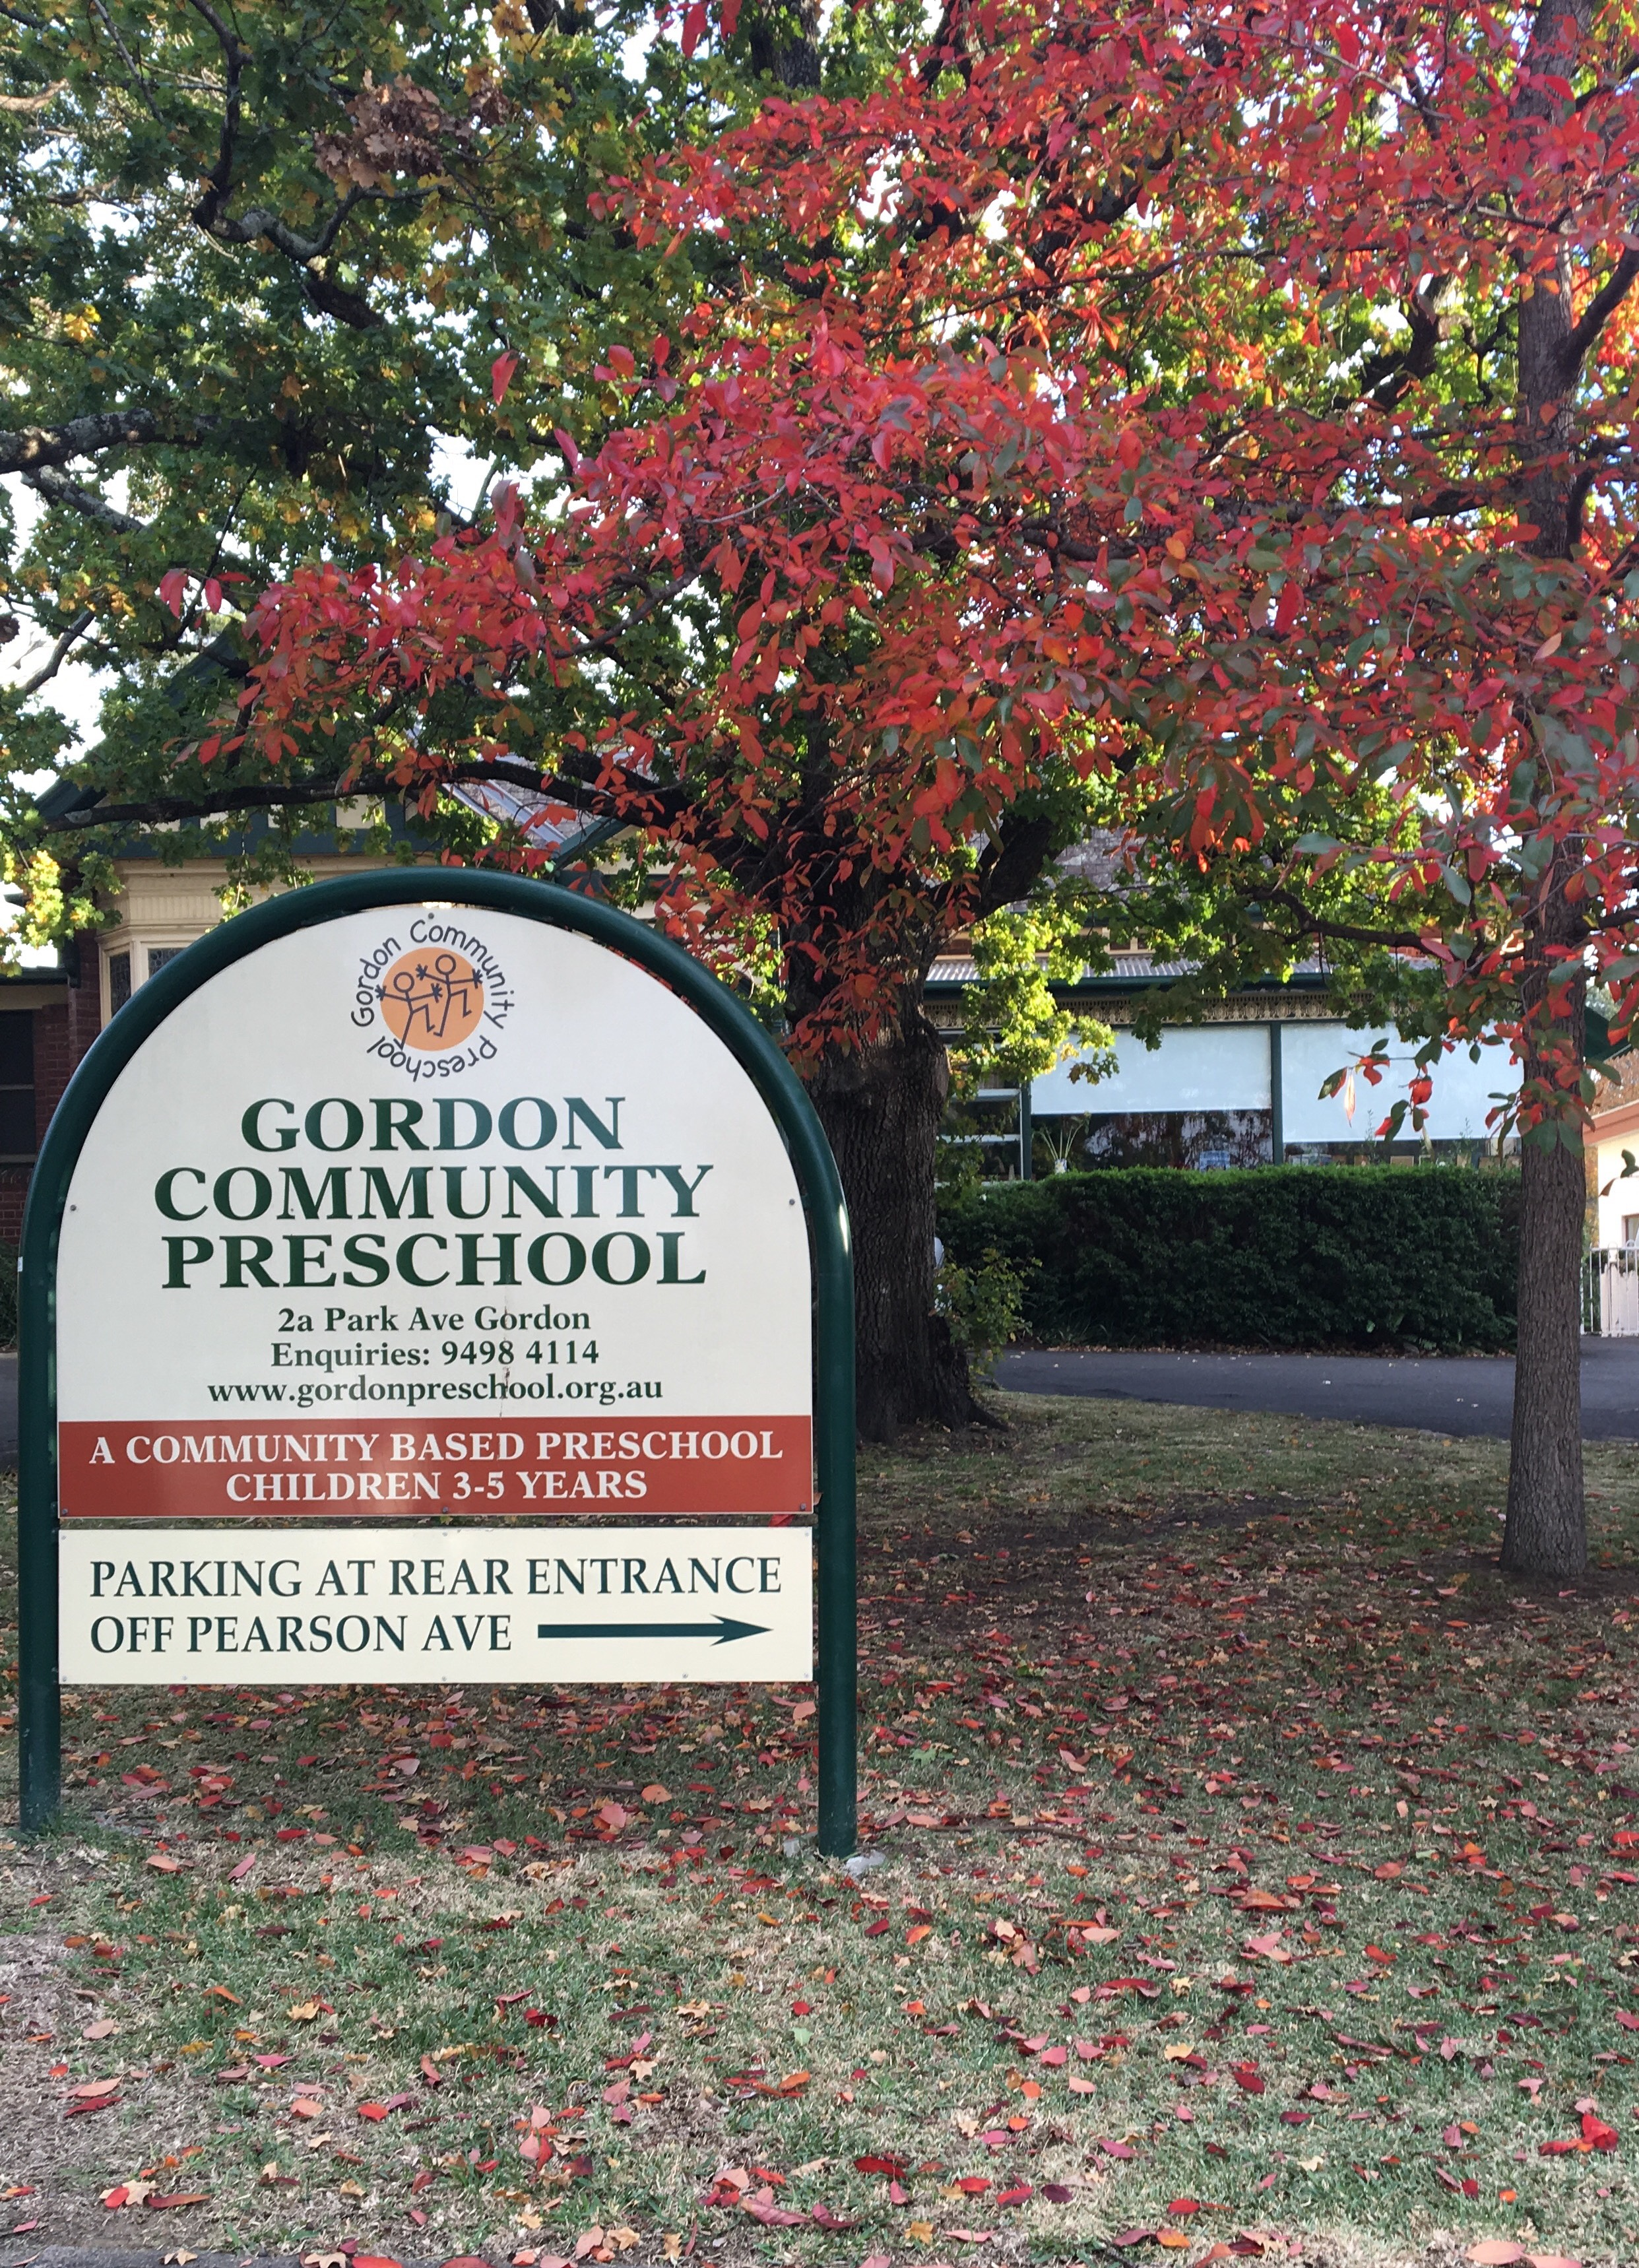 Our preschool at a glance - Rated as Exceeding the National Quality Standard for children's services by ACECQA.Excellent staff to child ratios with well qualified educators -higher than the regulatory standard.Our preschool employs two Mandarin speaking teachers on a part time basis.Large natural play space and garden, plenty of shade.Strong community focus with opportunities for families to connect with one another.Close to public transport.Varied and rich programme including regular incursions and excursions.Scheduled parent-teacher catch up meetings.A 'Buddies Programme' in term four. A programme aimed at helping facilitate a smooth school transition.Our programme is underpinned by the Early Years Learning Framework for Australia.